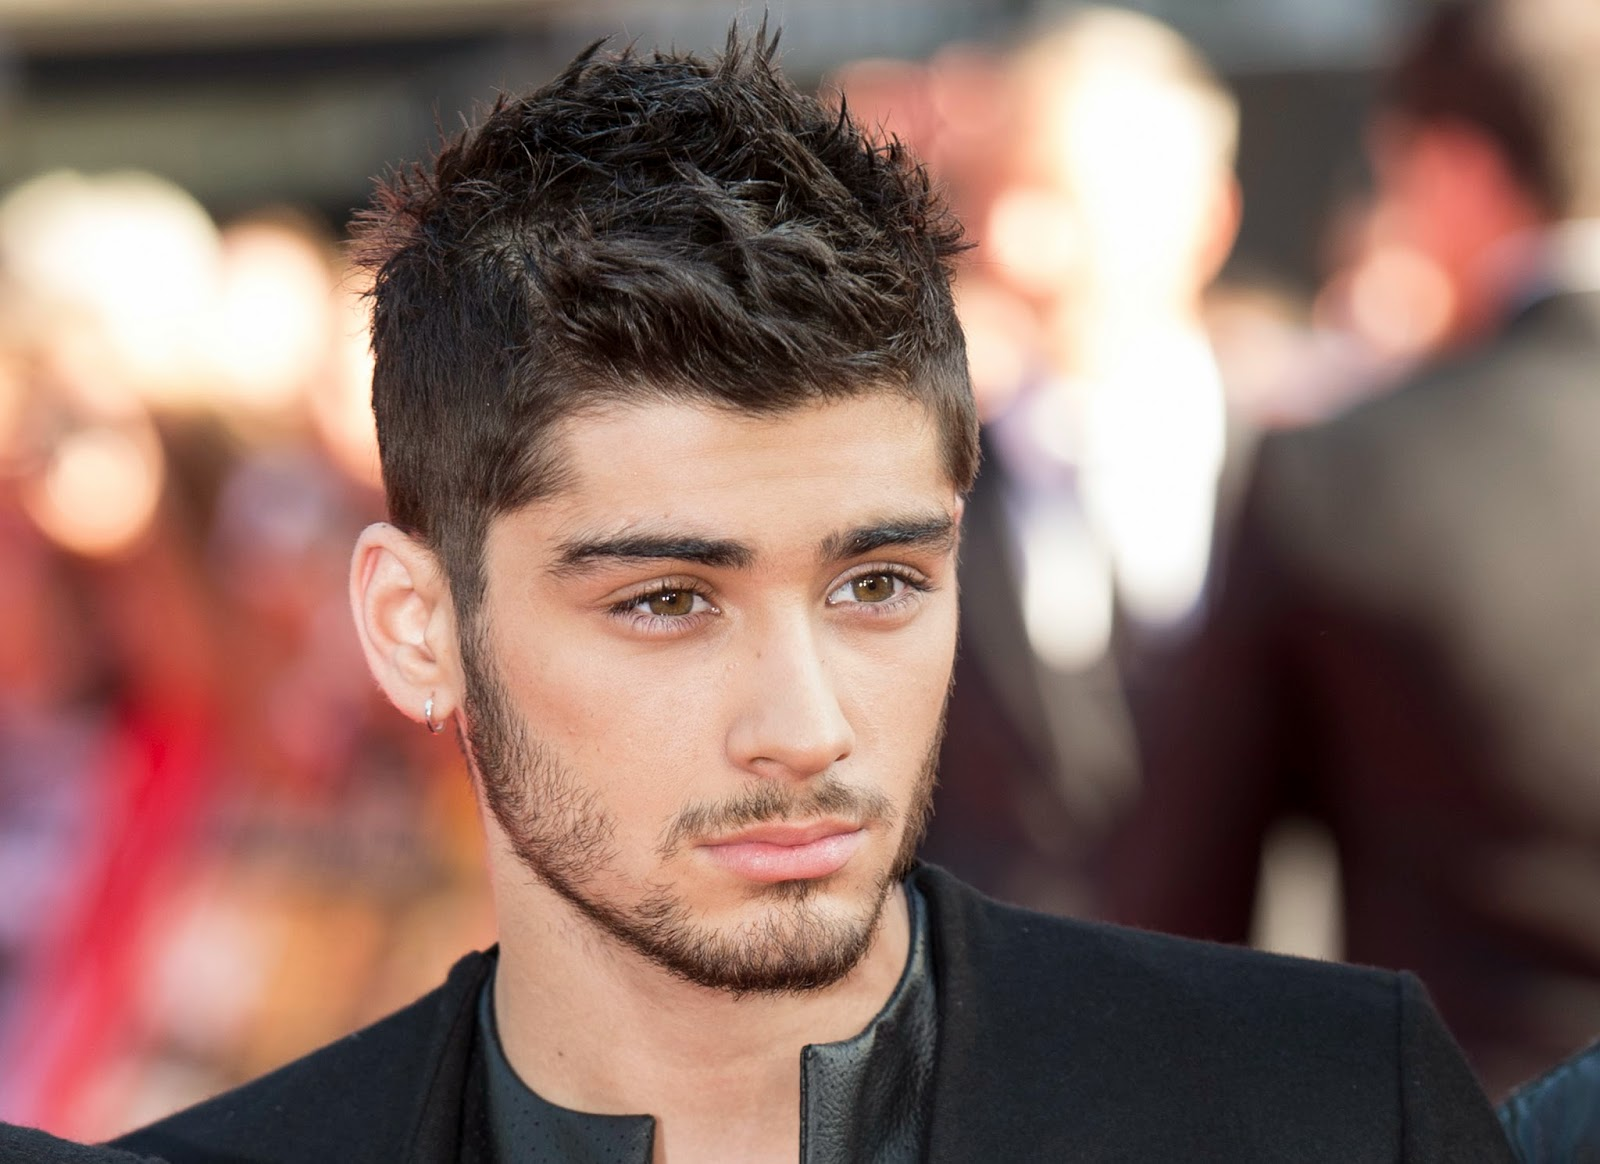 Zayn Malik leaves One Direction tour due to stress